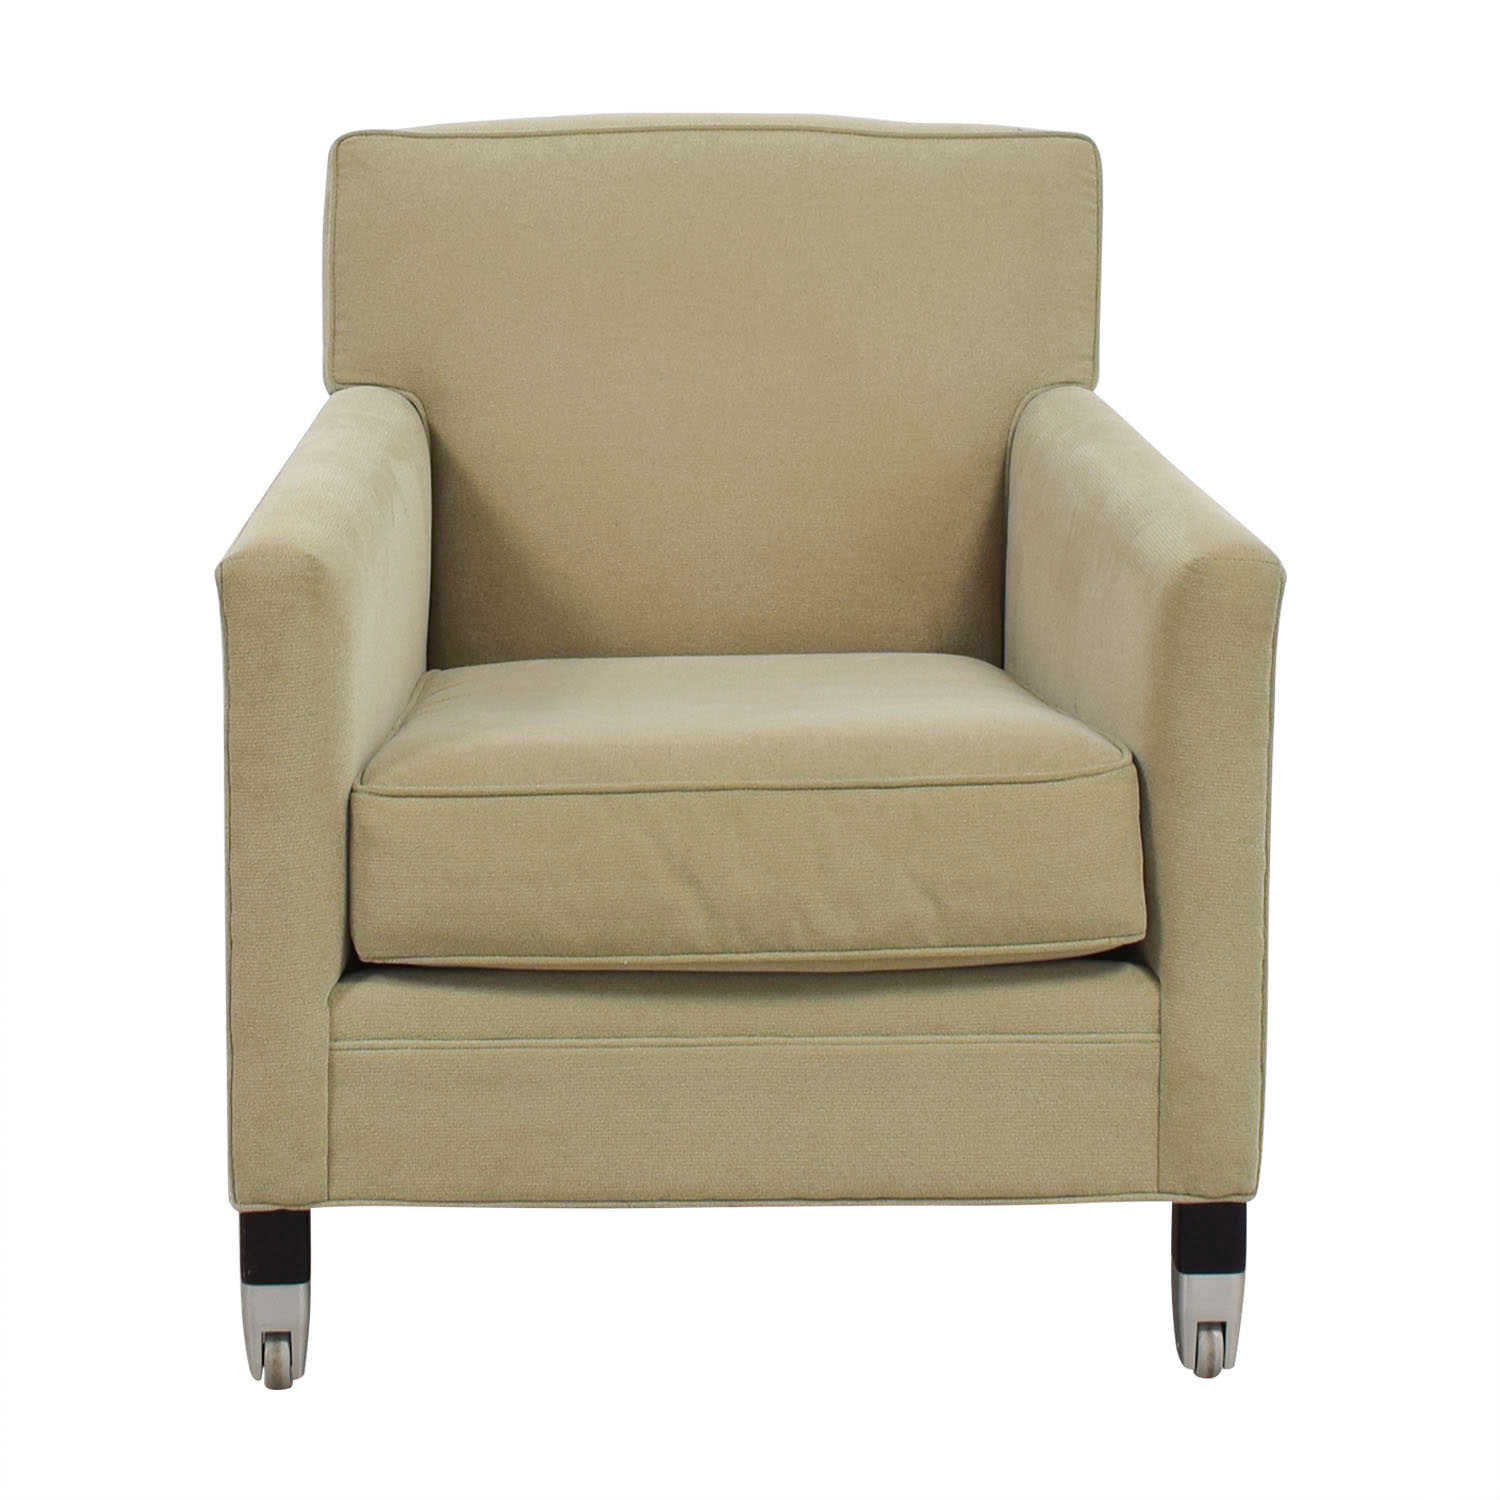 Mitchell Gold + Bob Williams Light Green Accent Chair Mitchell Gold + Bob Williams